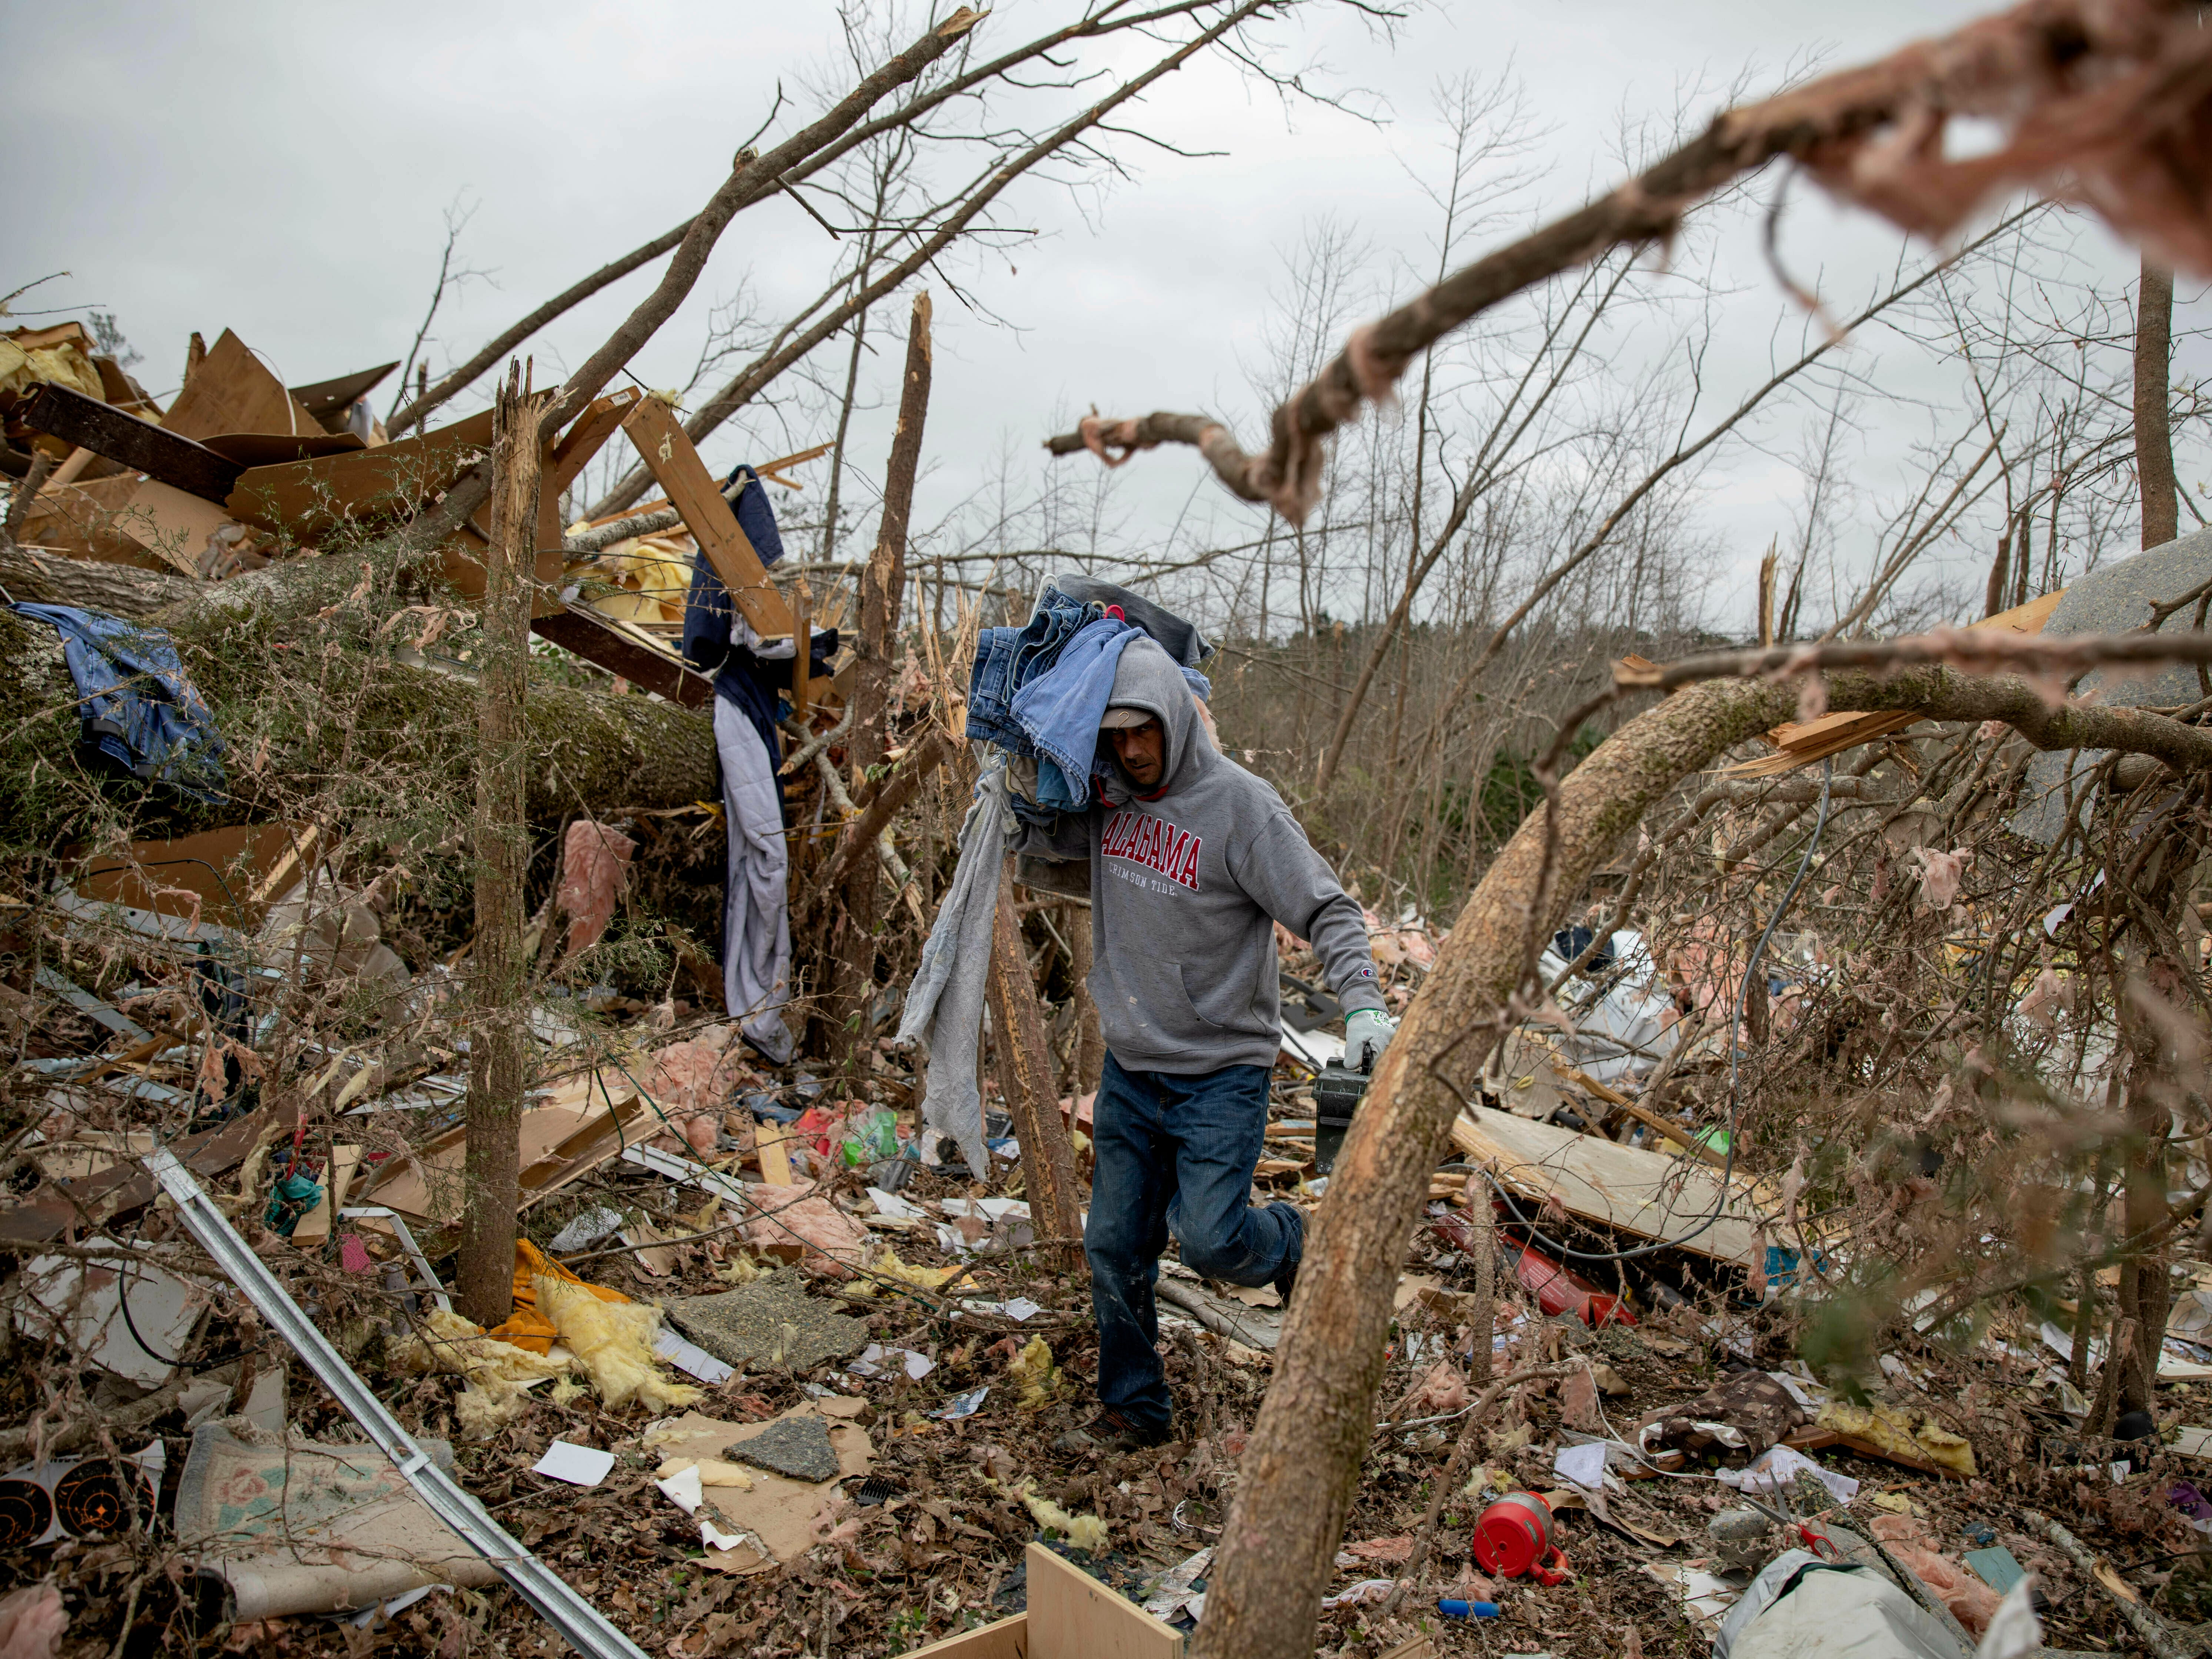 Danny Allen helps recover belongings while sifting through the debris of a friend's home destroyed by a tornado in Beauregard, Ala., March 4, 2019.